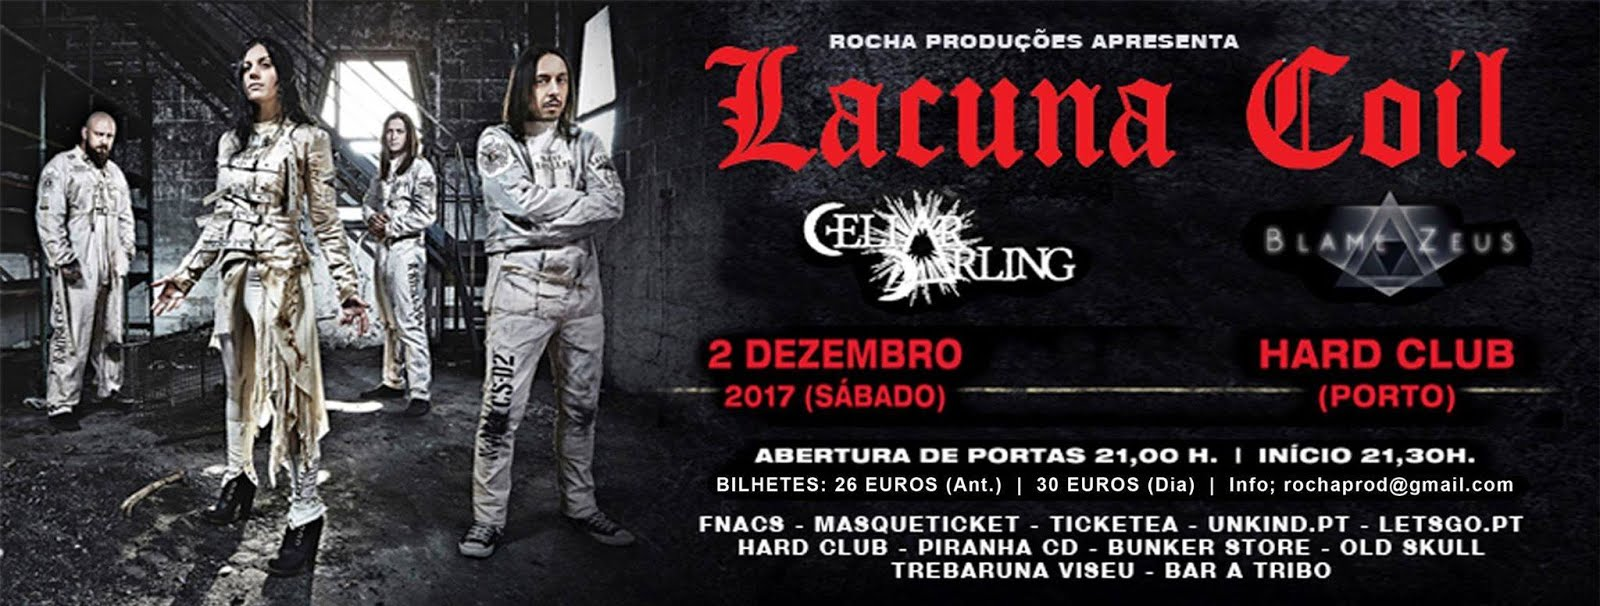 Lacuna Coil + Cellar Darling + Blame Zeus @ Hard Club